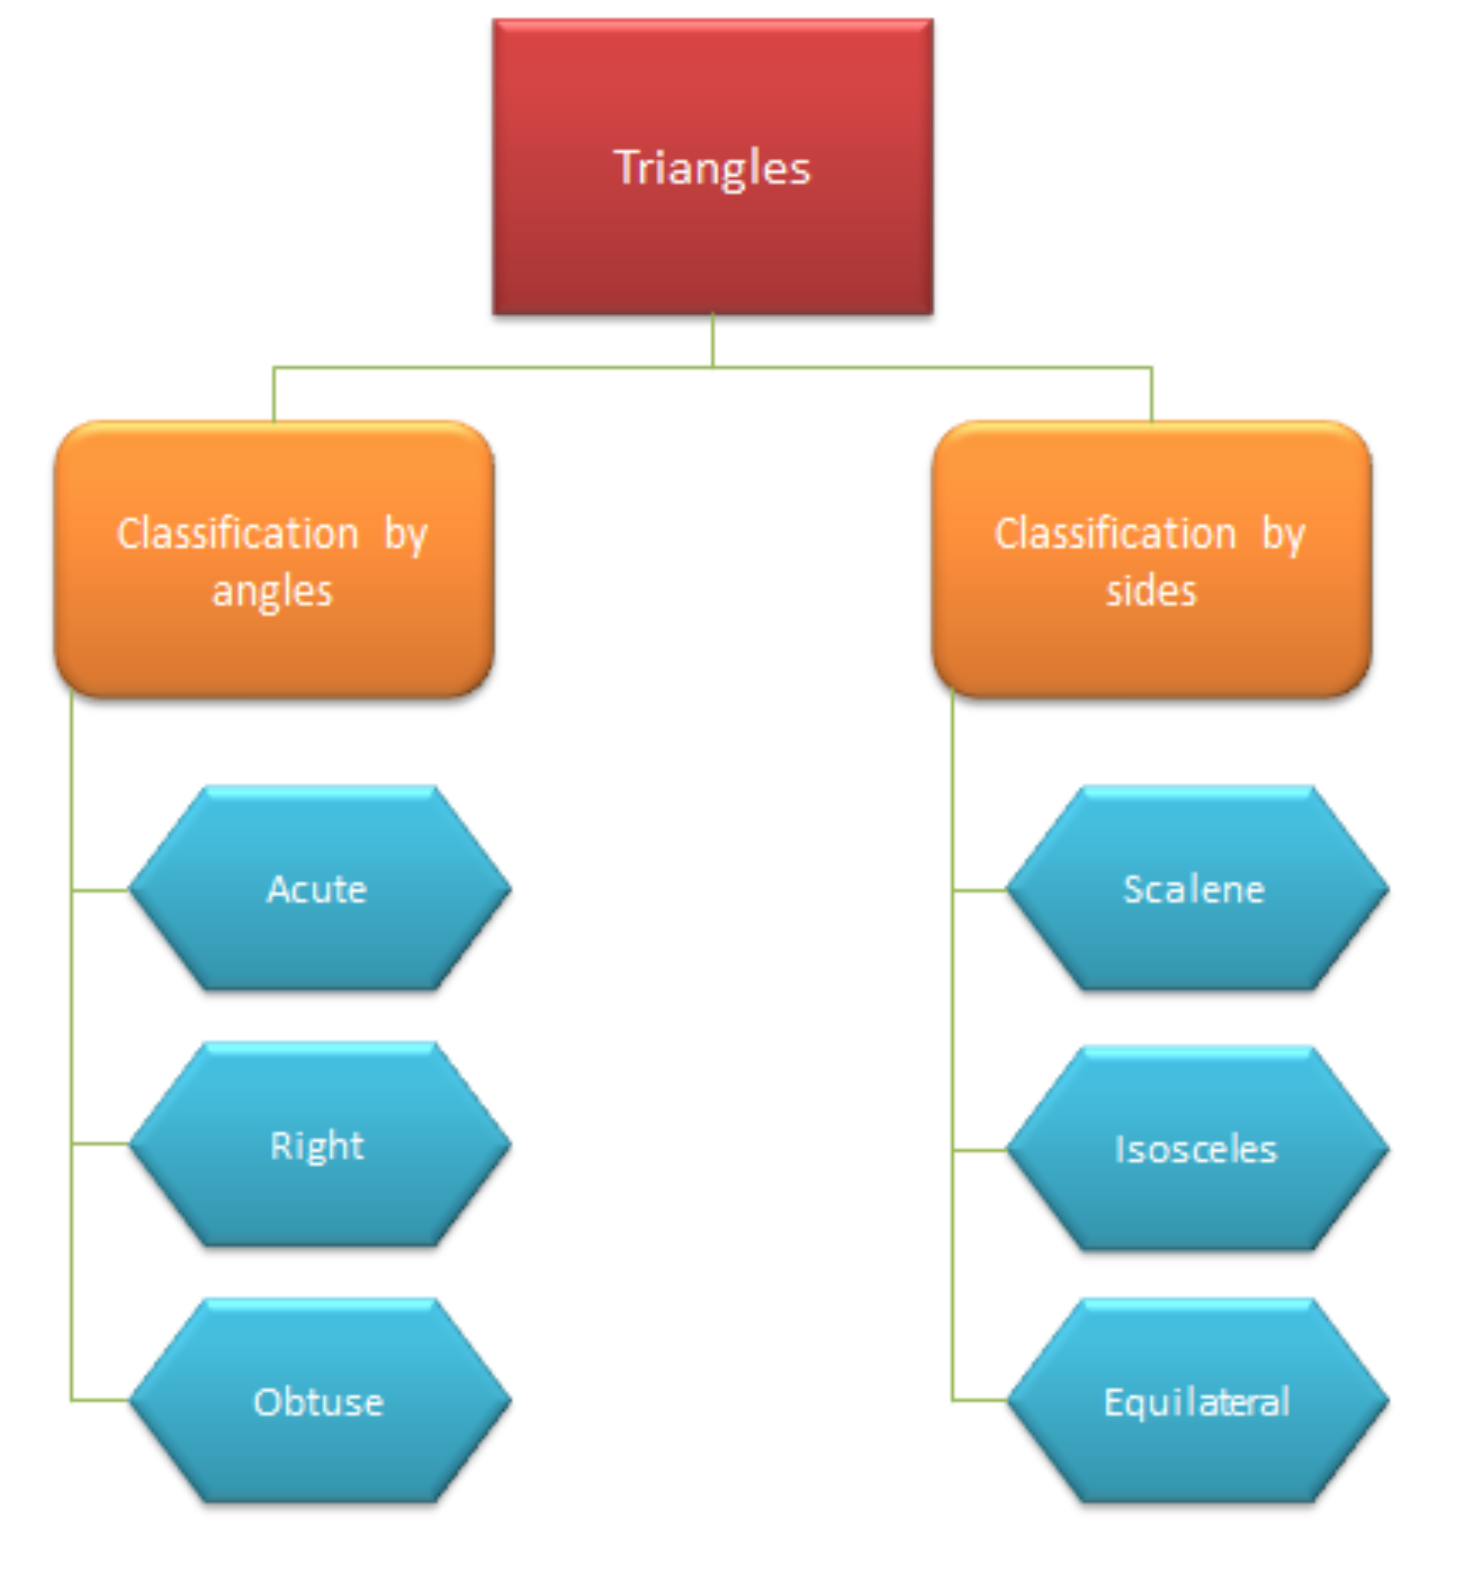 Properties of triangles - classification of triangles flow chart